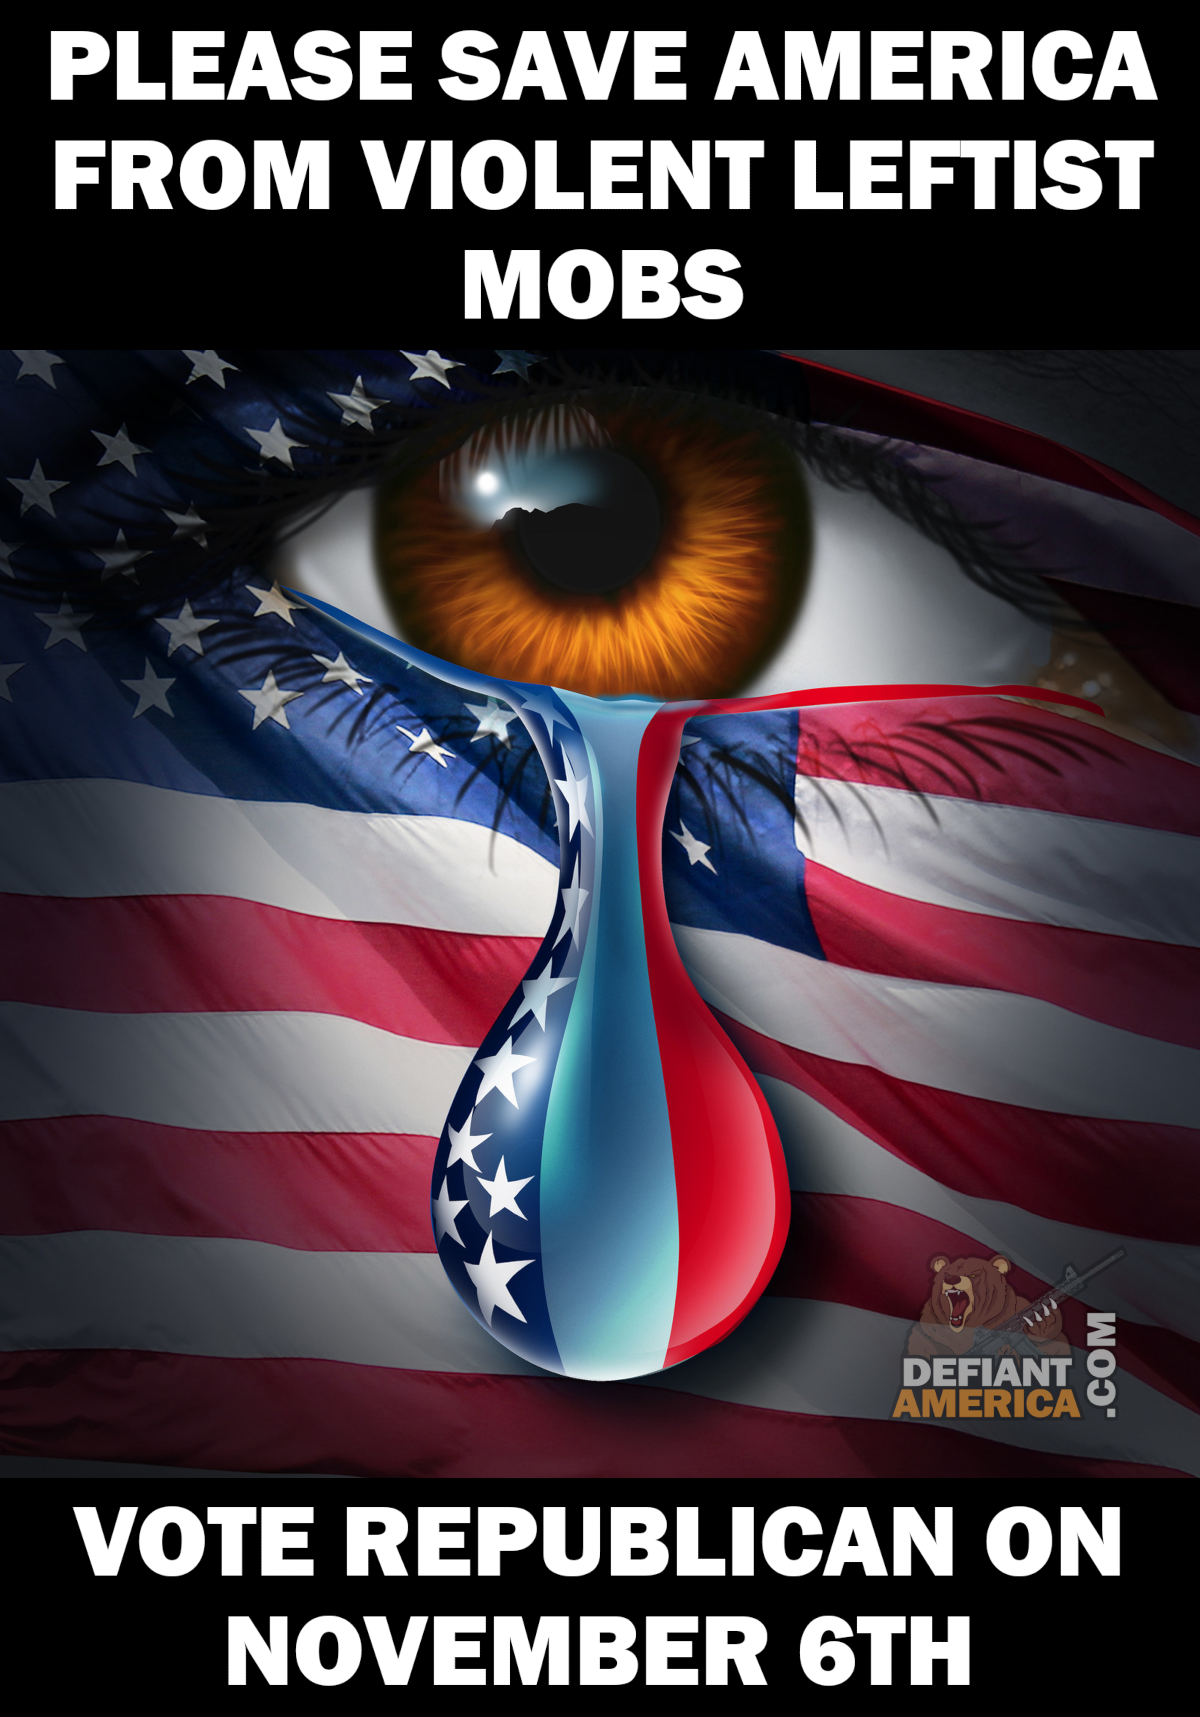 Vote for Jobs not Mobs on November 6th! Praying for our